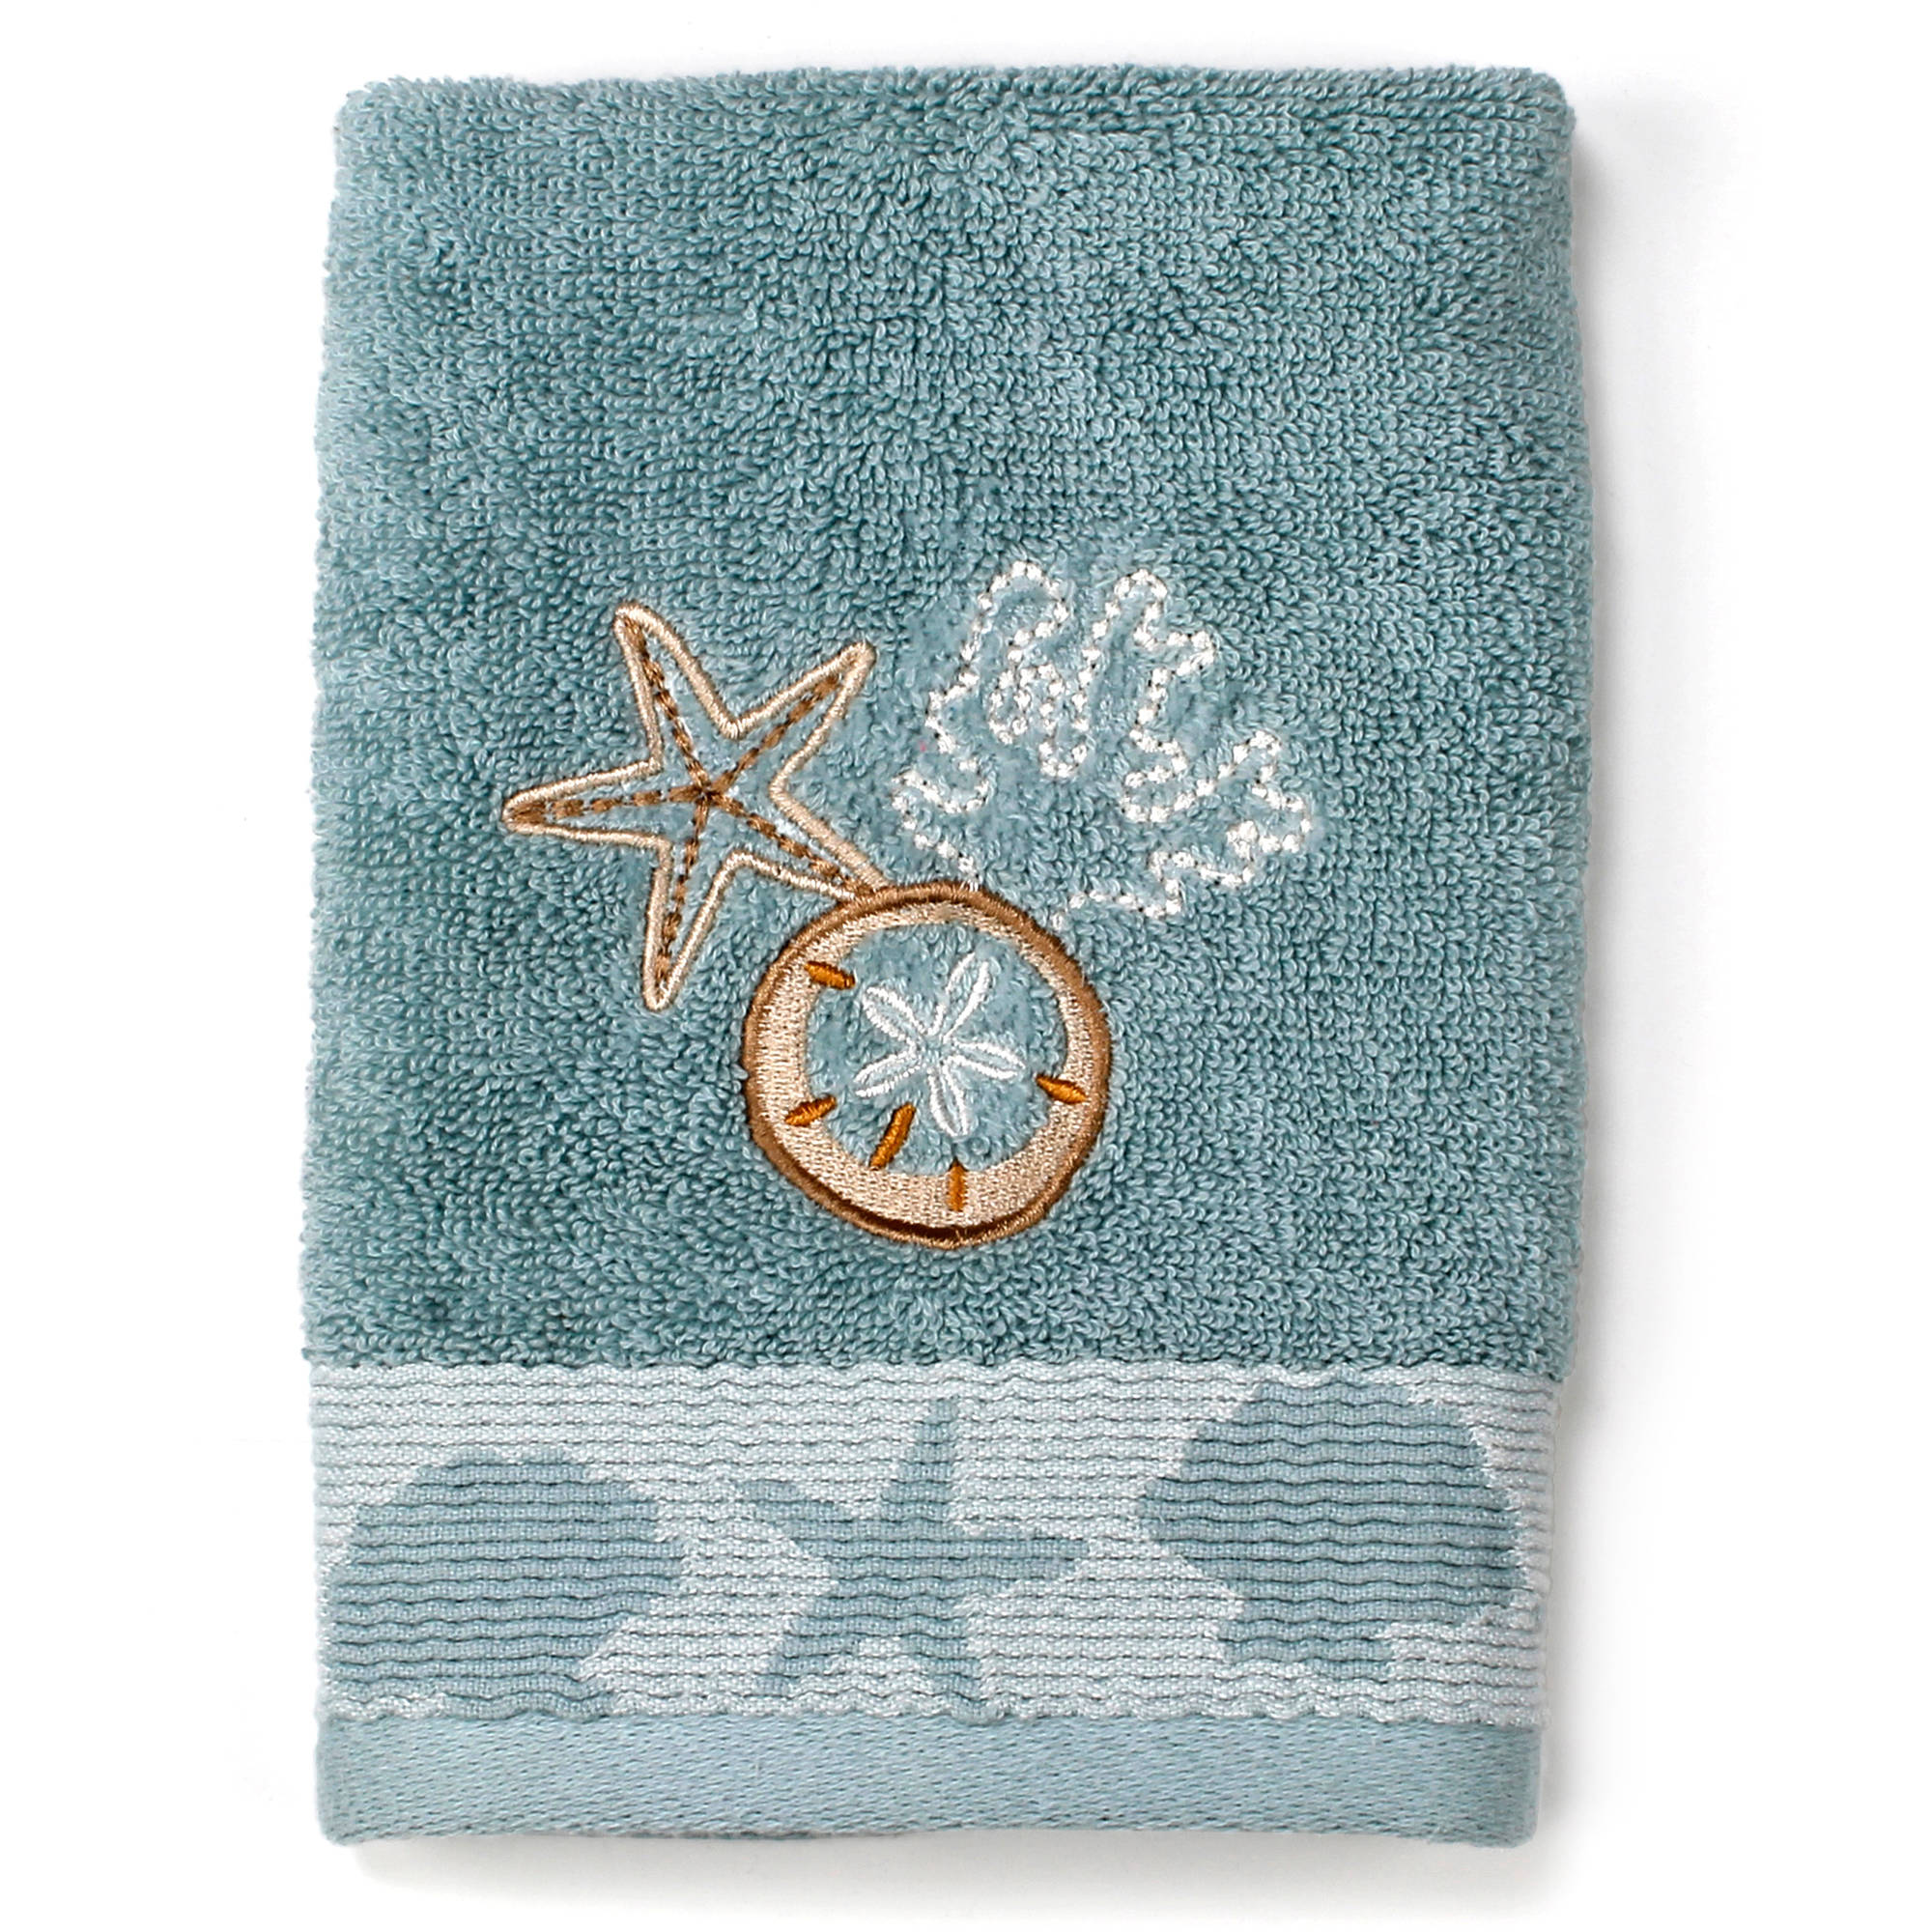 Better Homes and Gardens Coastal Tip Towel